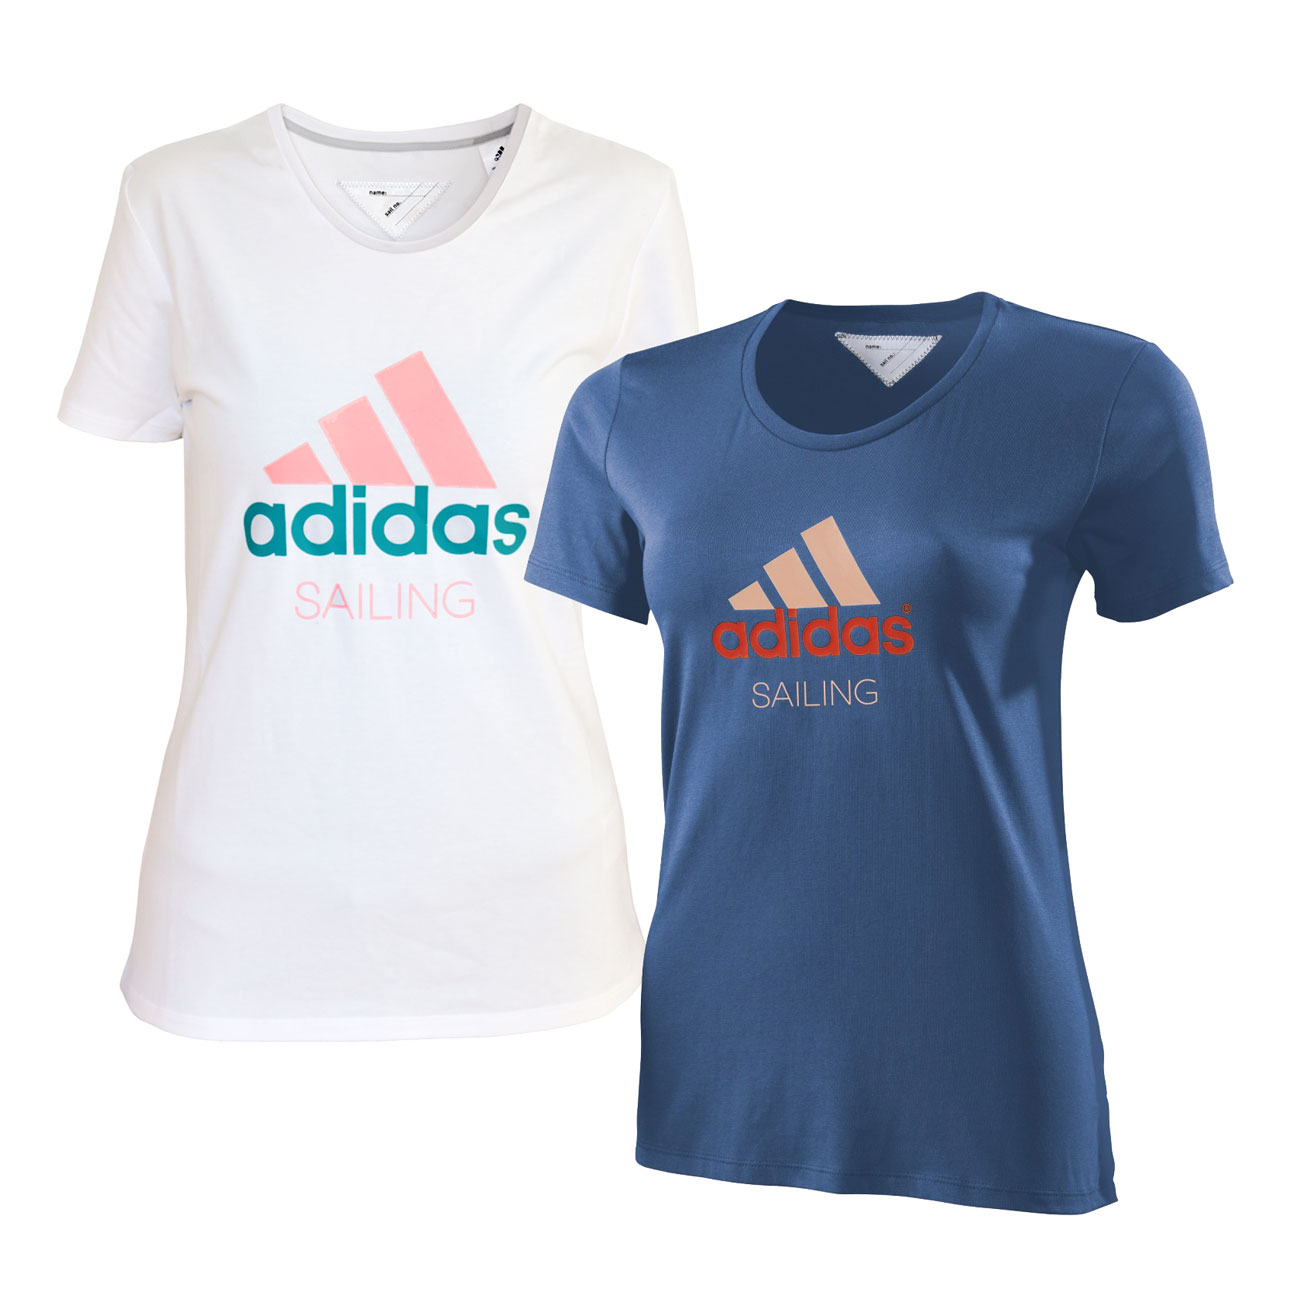 adidas sailing performance logo shirt women 39 s t shirt outdoor sports. Black Bedroom Furniture Sets. Home Design Ideas